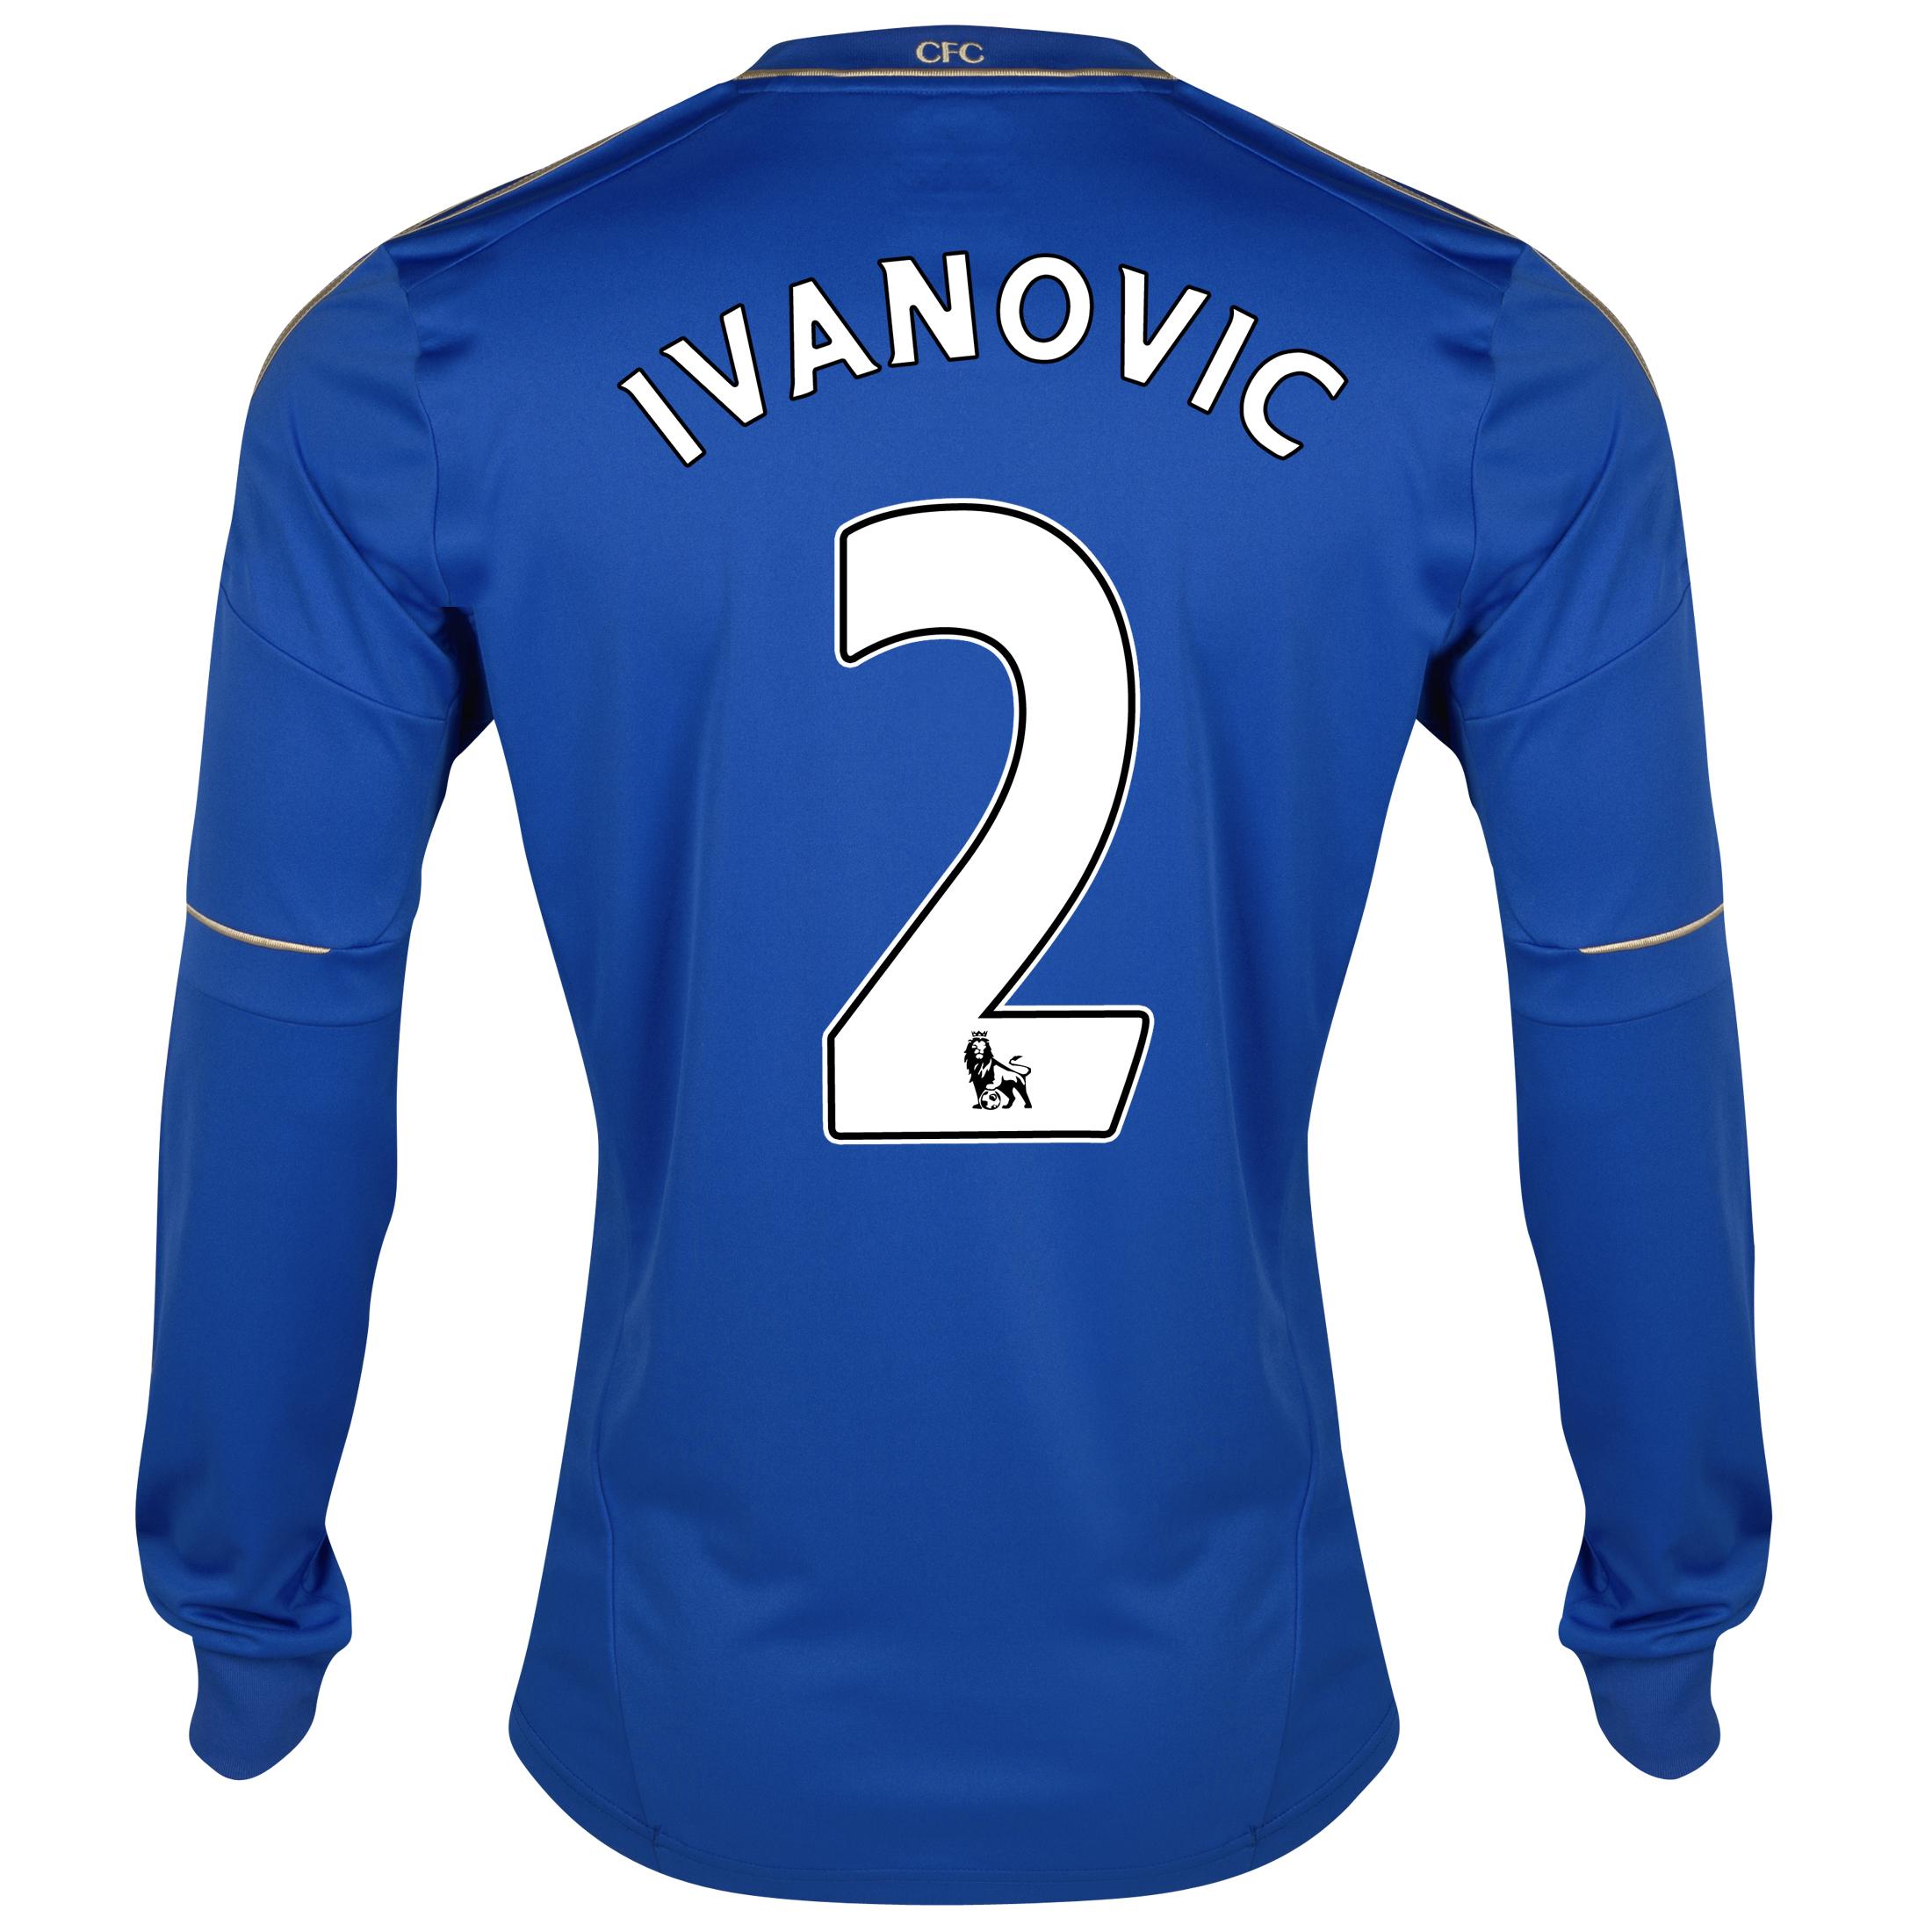 Chelsea Home Shirt 2012/13 - Long Sleeved - Youths with Ivanovic 2 printing